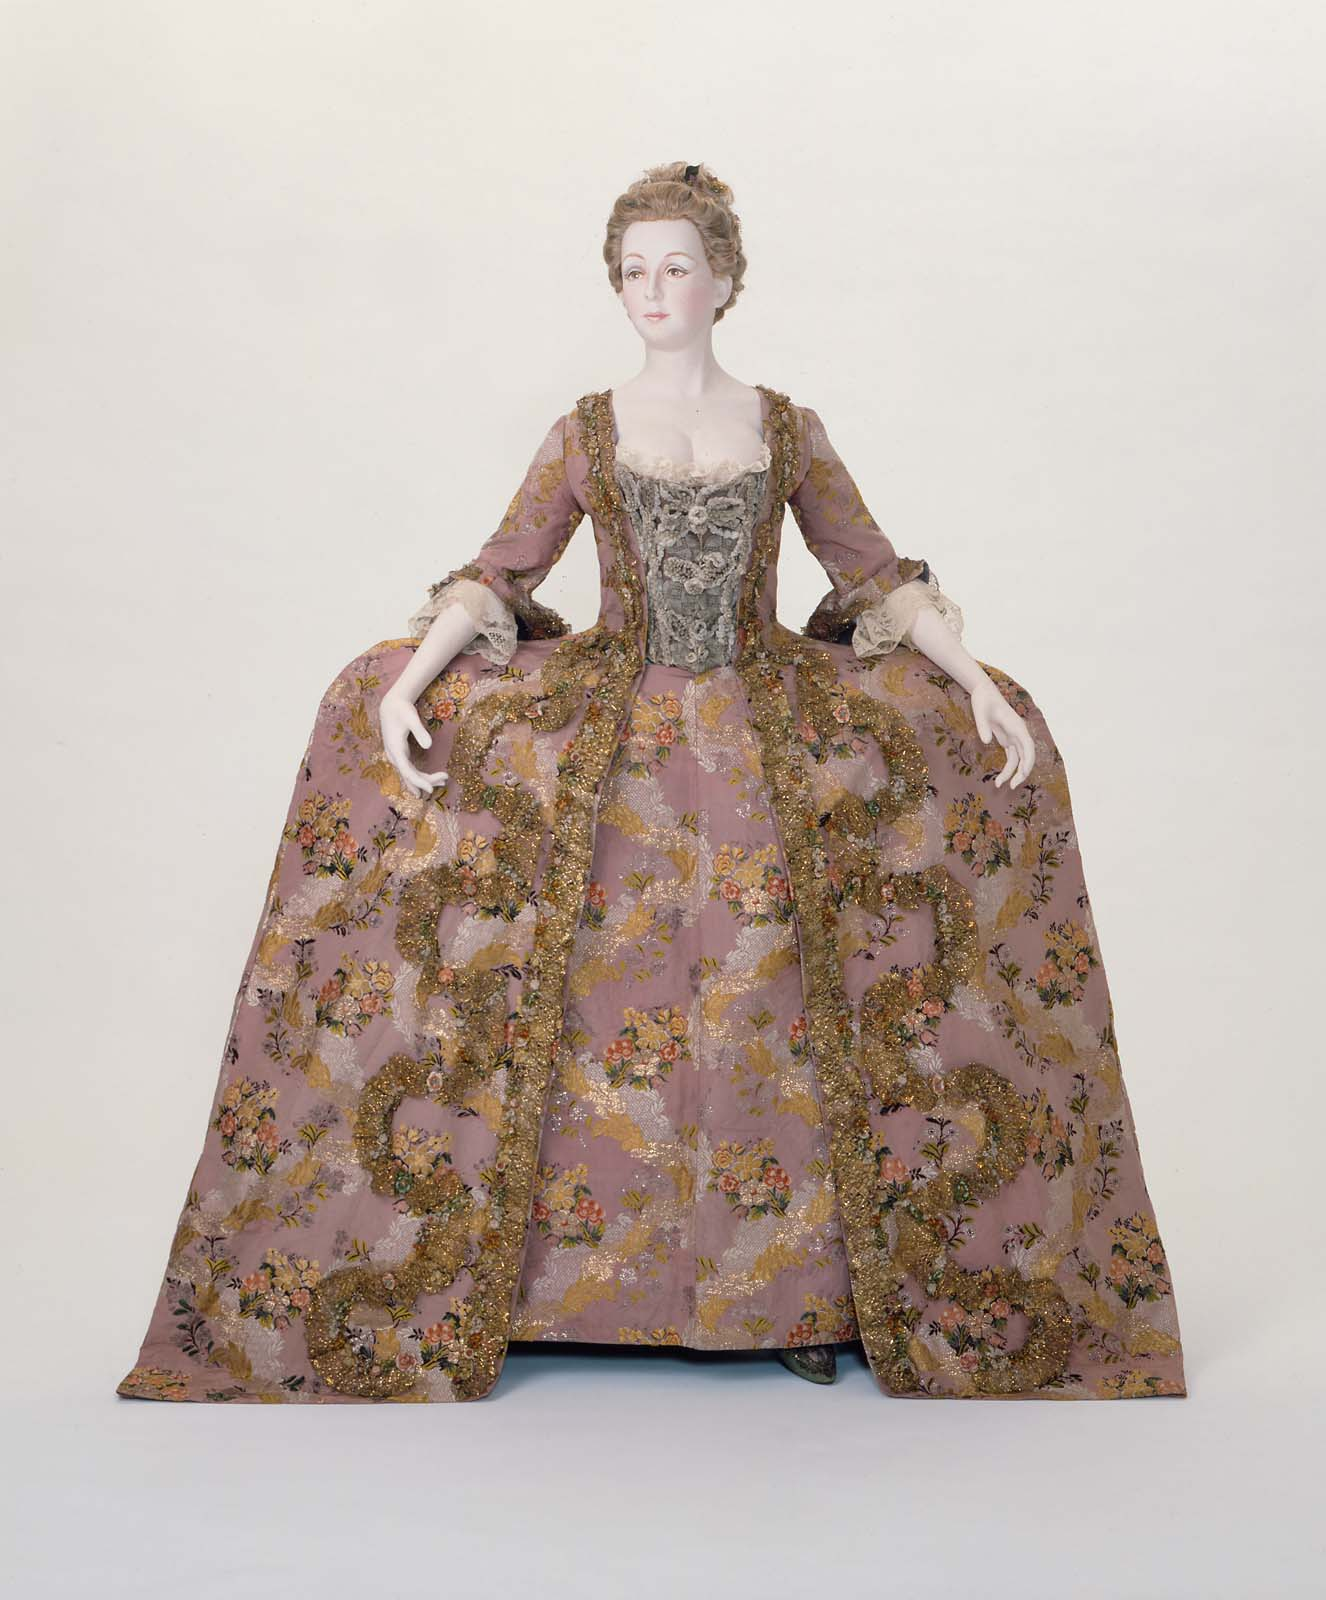 Robe a la Francaise, Italian, about 1775, Silk taffeta brocaded with silk and metallic threads, MFA Boston, 77.6a-b